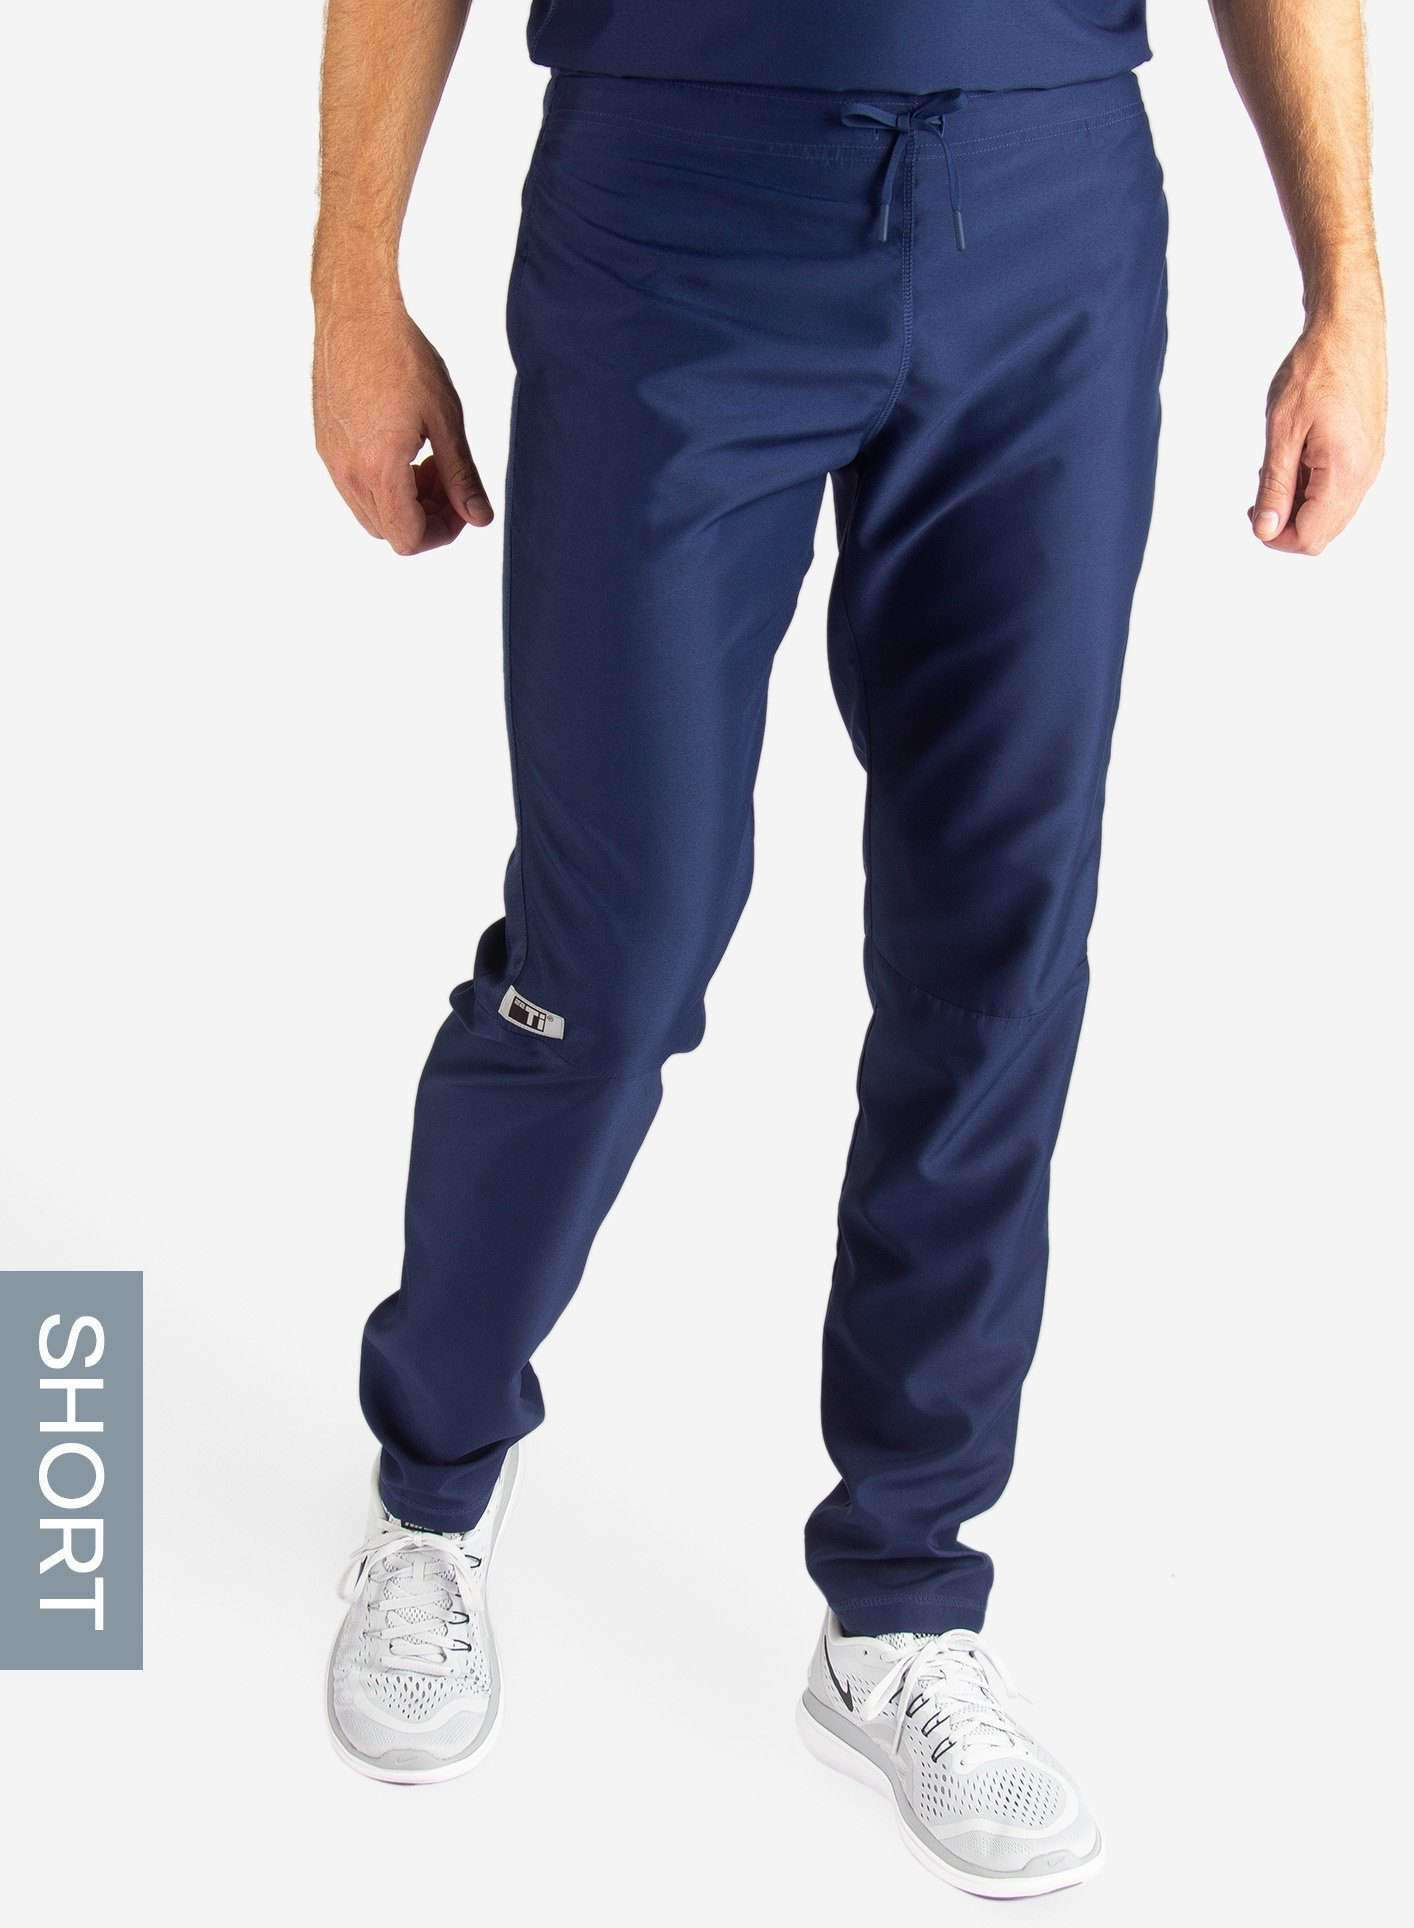 Men's Short Slim Fit Scrub Pants in Navy Blue